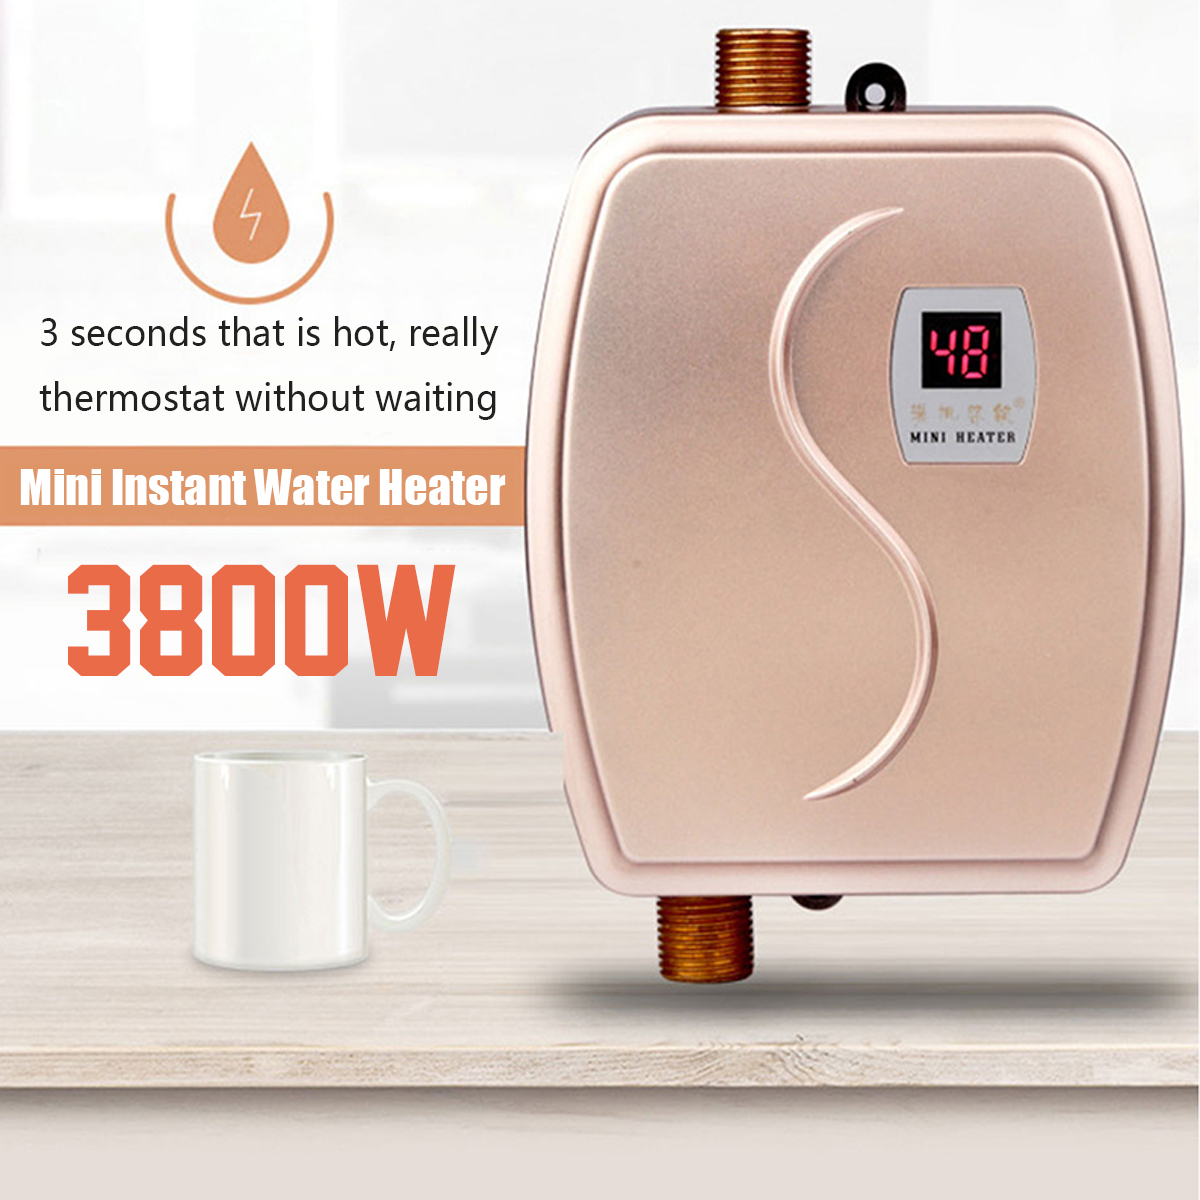 3800W Mini Electric Water Heater Instant Heating LED Display Electric Hot Water Heater Leakage Protection Kitchen Shower Home